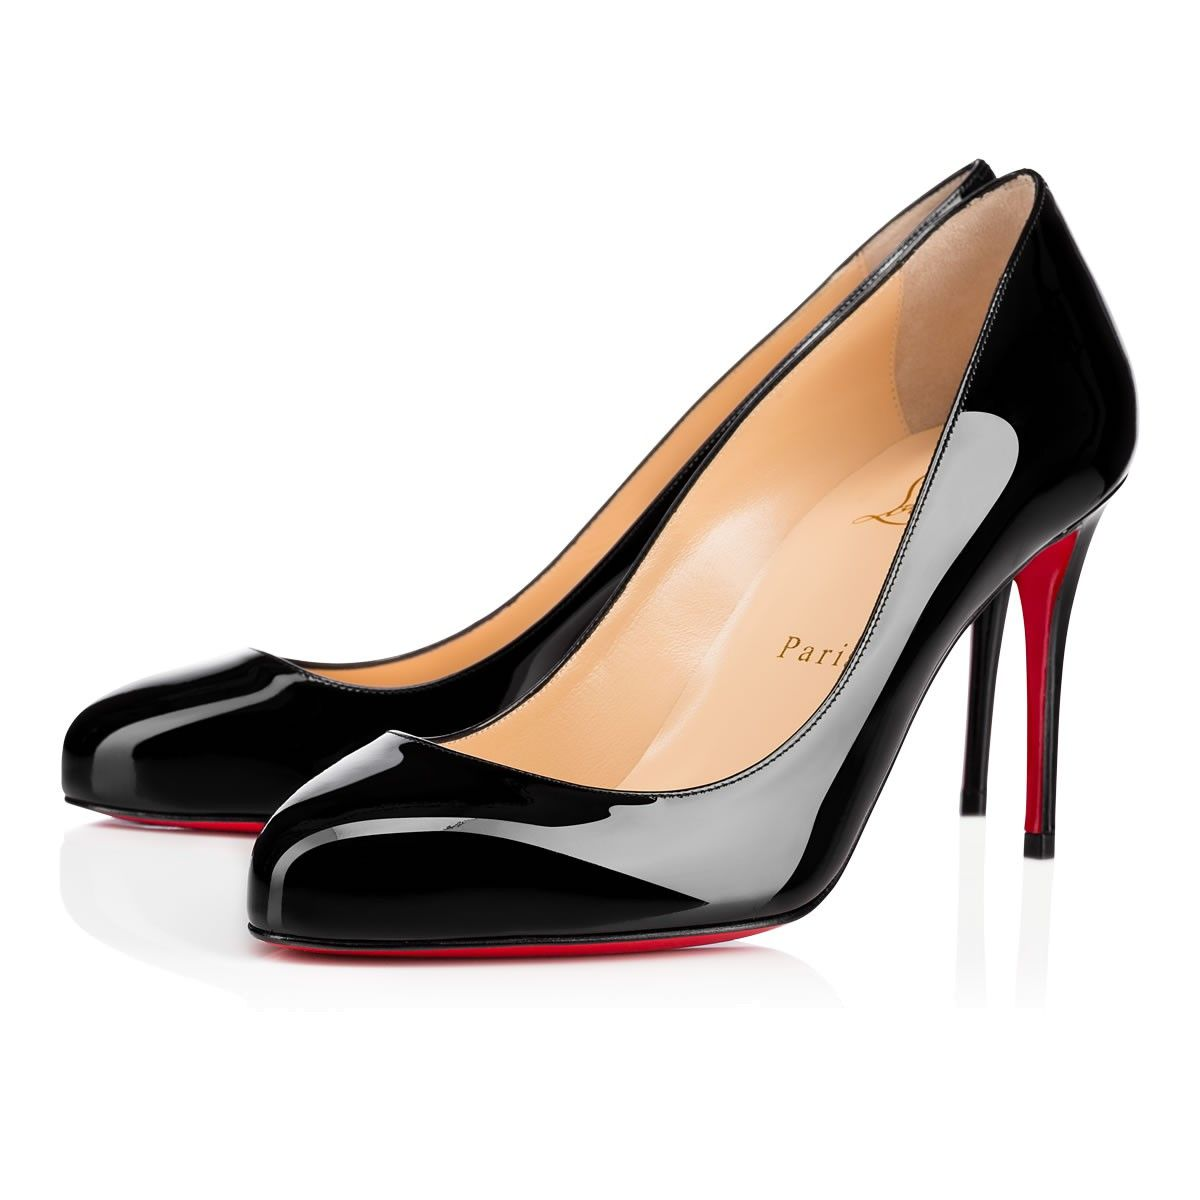 3a6d094763 CHRISTIAN LOUBOUTIN Dorissima 85Mm Black Patent Leather. #christianlouboutin  #shoes #